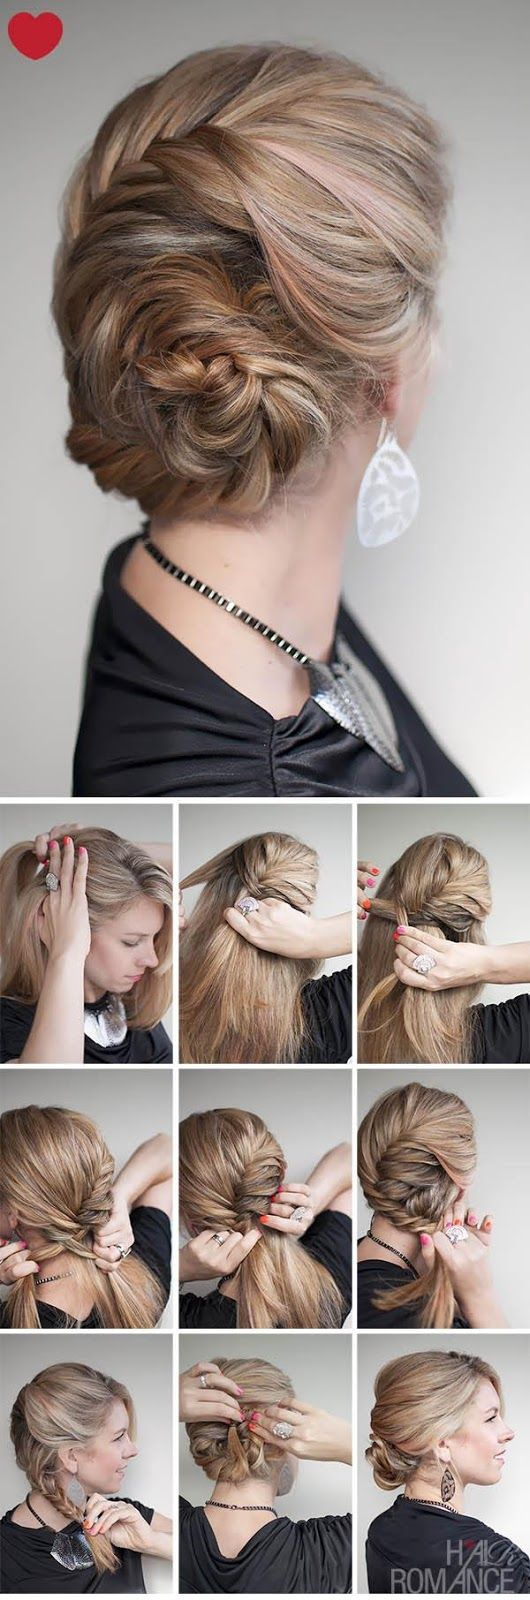 How To: French fishtail braid chignon | hairstyles tutorial